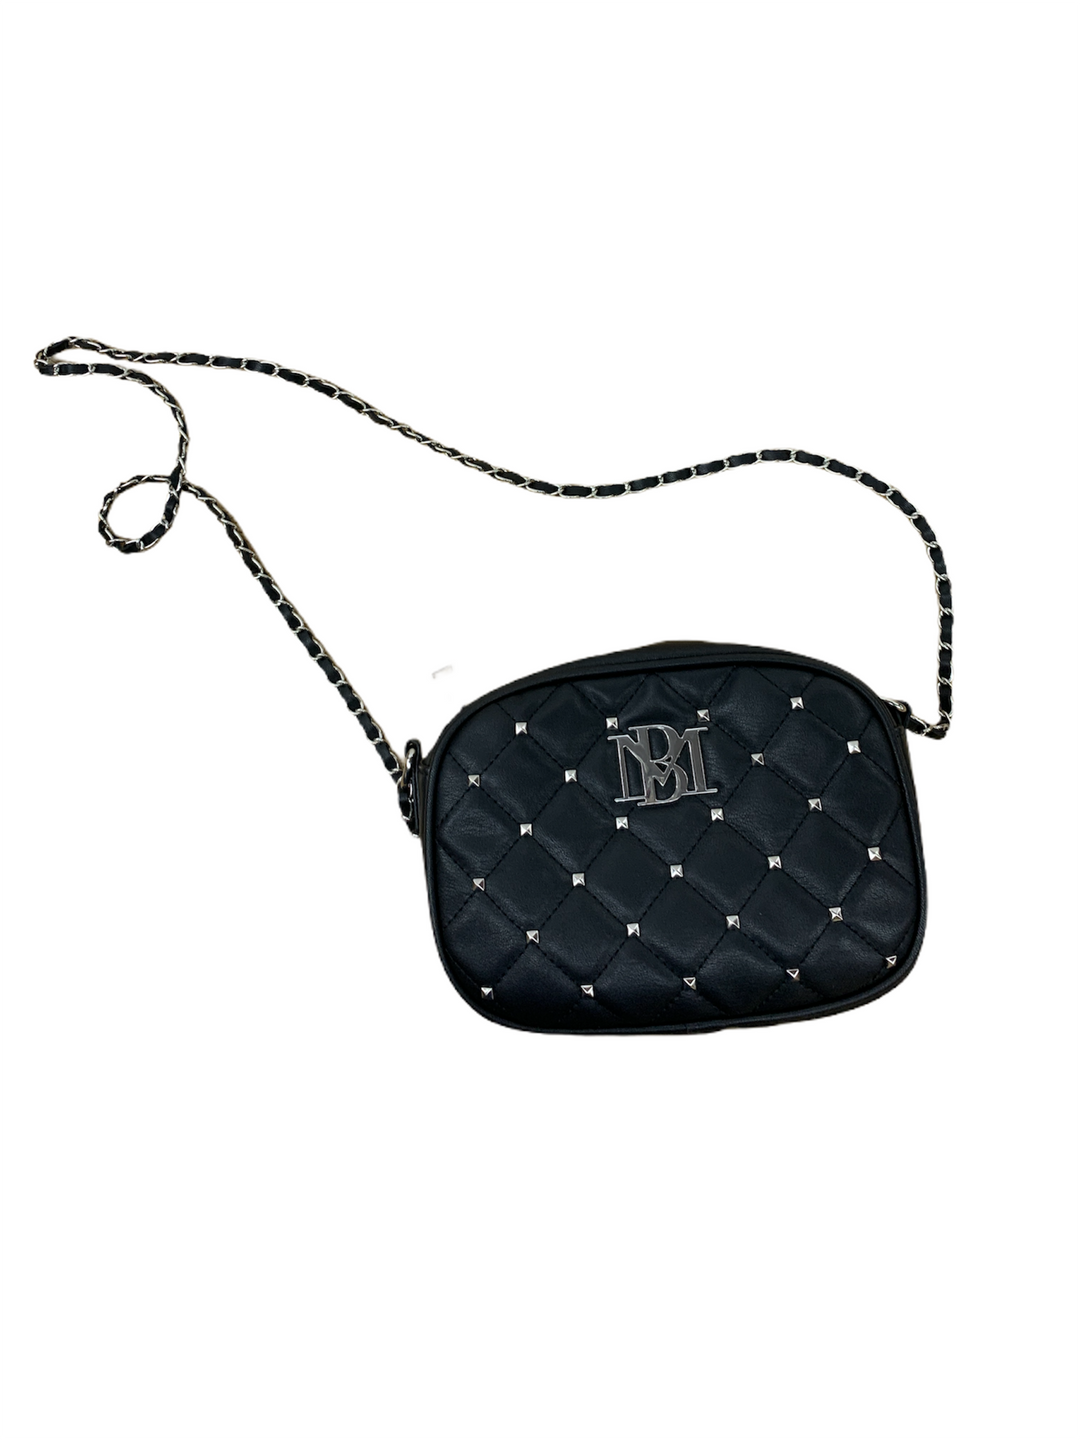 Primary Photo - BRAND: BADGLEY MISCHKA <BR>STYLE: HANDBAG DESIGNER <BR>COLOR: BLACK <BR>SIZE: SMALL <BR>SKU: 196-196145-1603